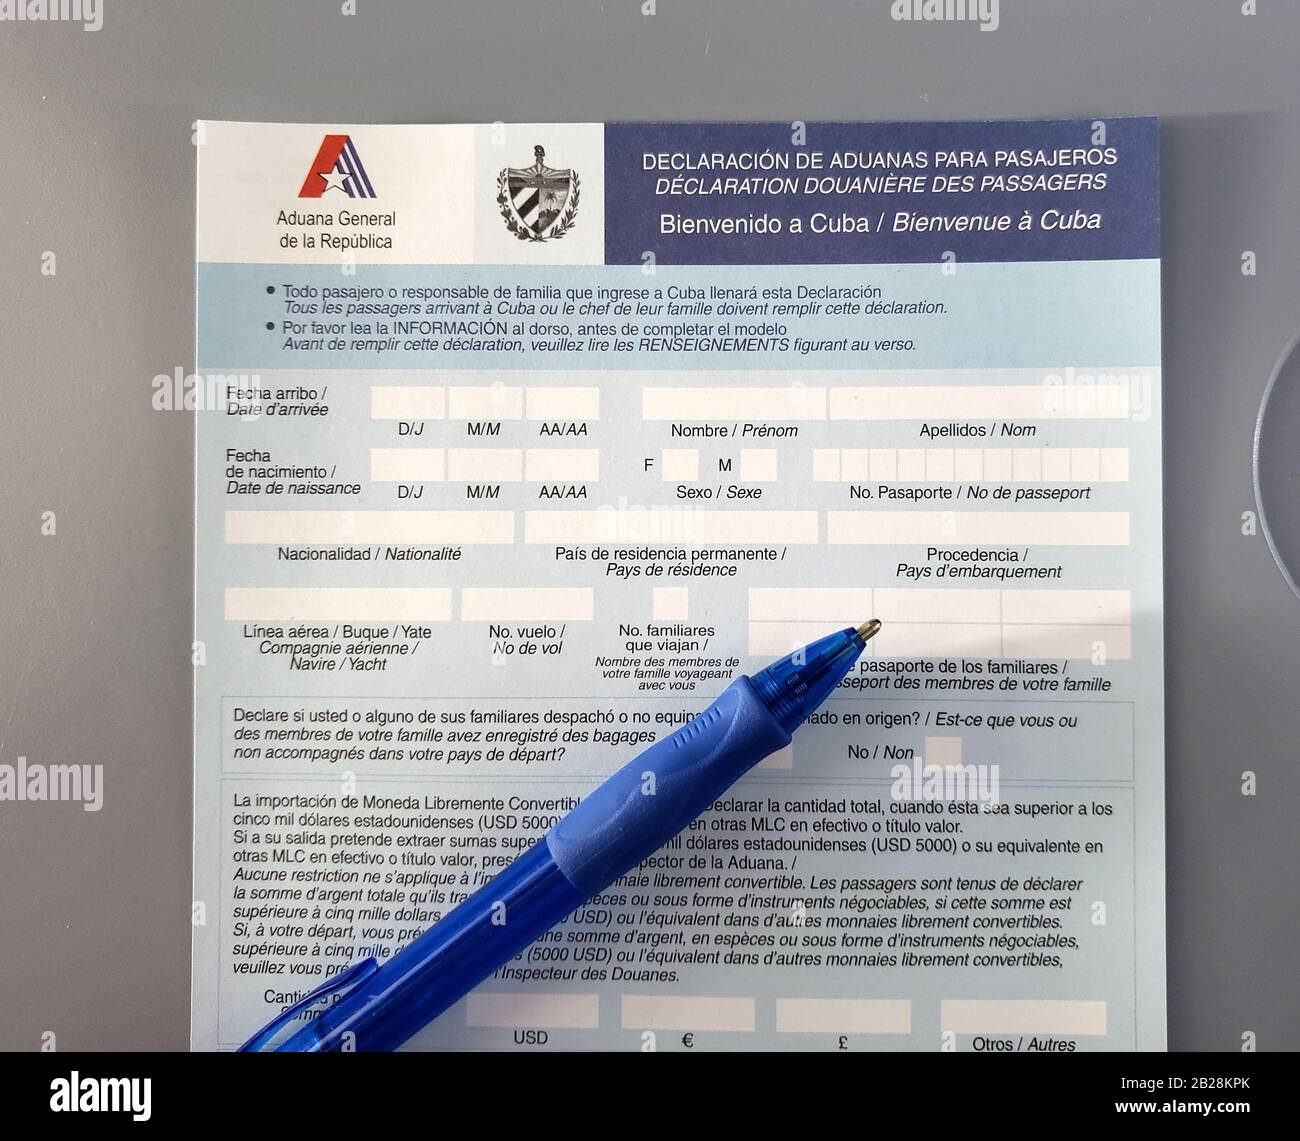 Cuba Visa Declaration Form This Form Should Be Completed By Any Visitor Or Tourist Entering Cuba Stock Photo Alamy